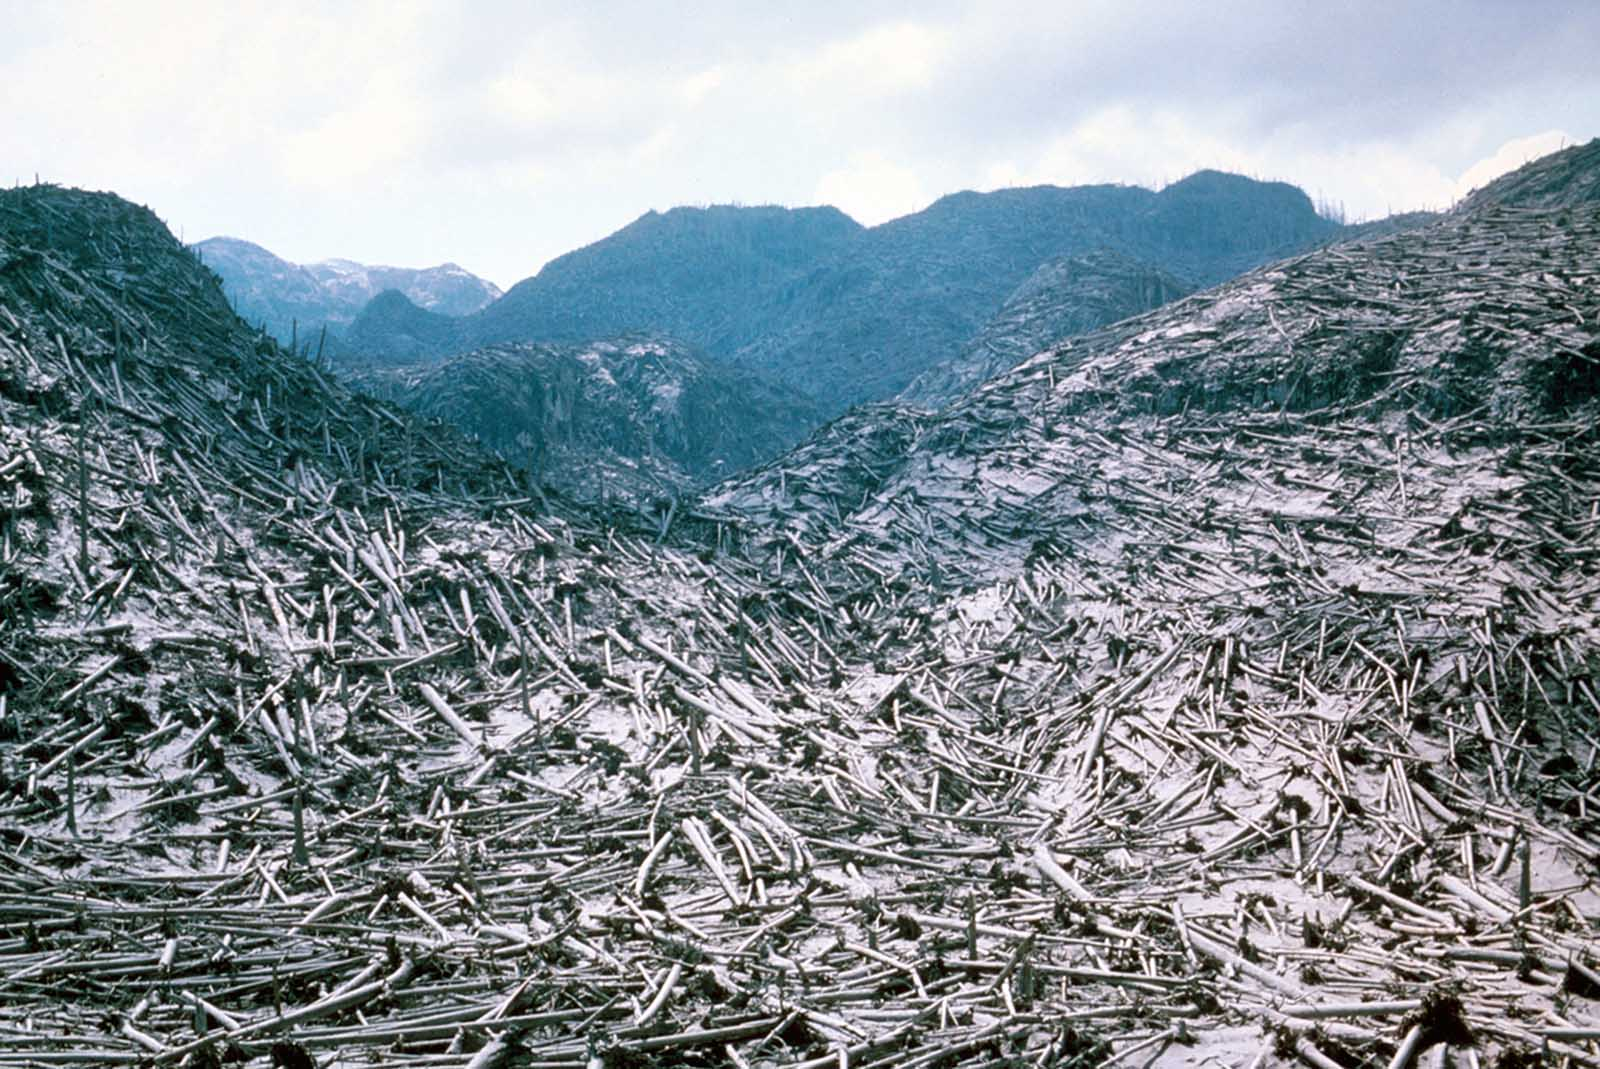 Aerial view of timber blowdown, destroyed by the May 18 eruption of Mount St. Helens, in Skamania County, Washington, on June 8, 1980.